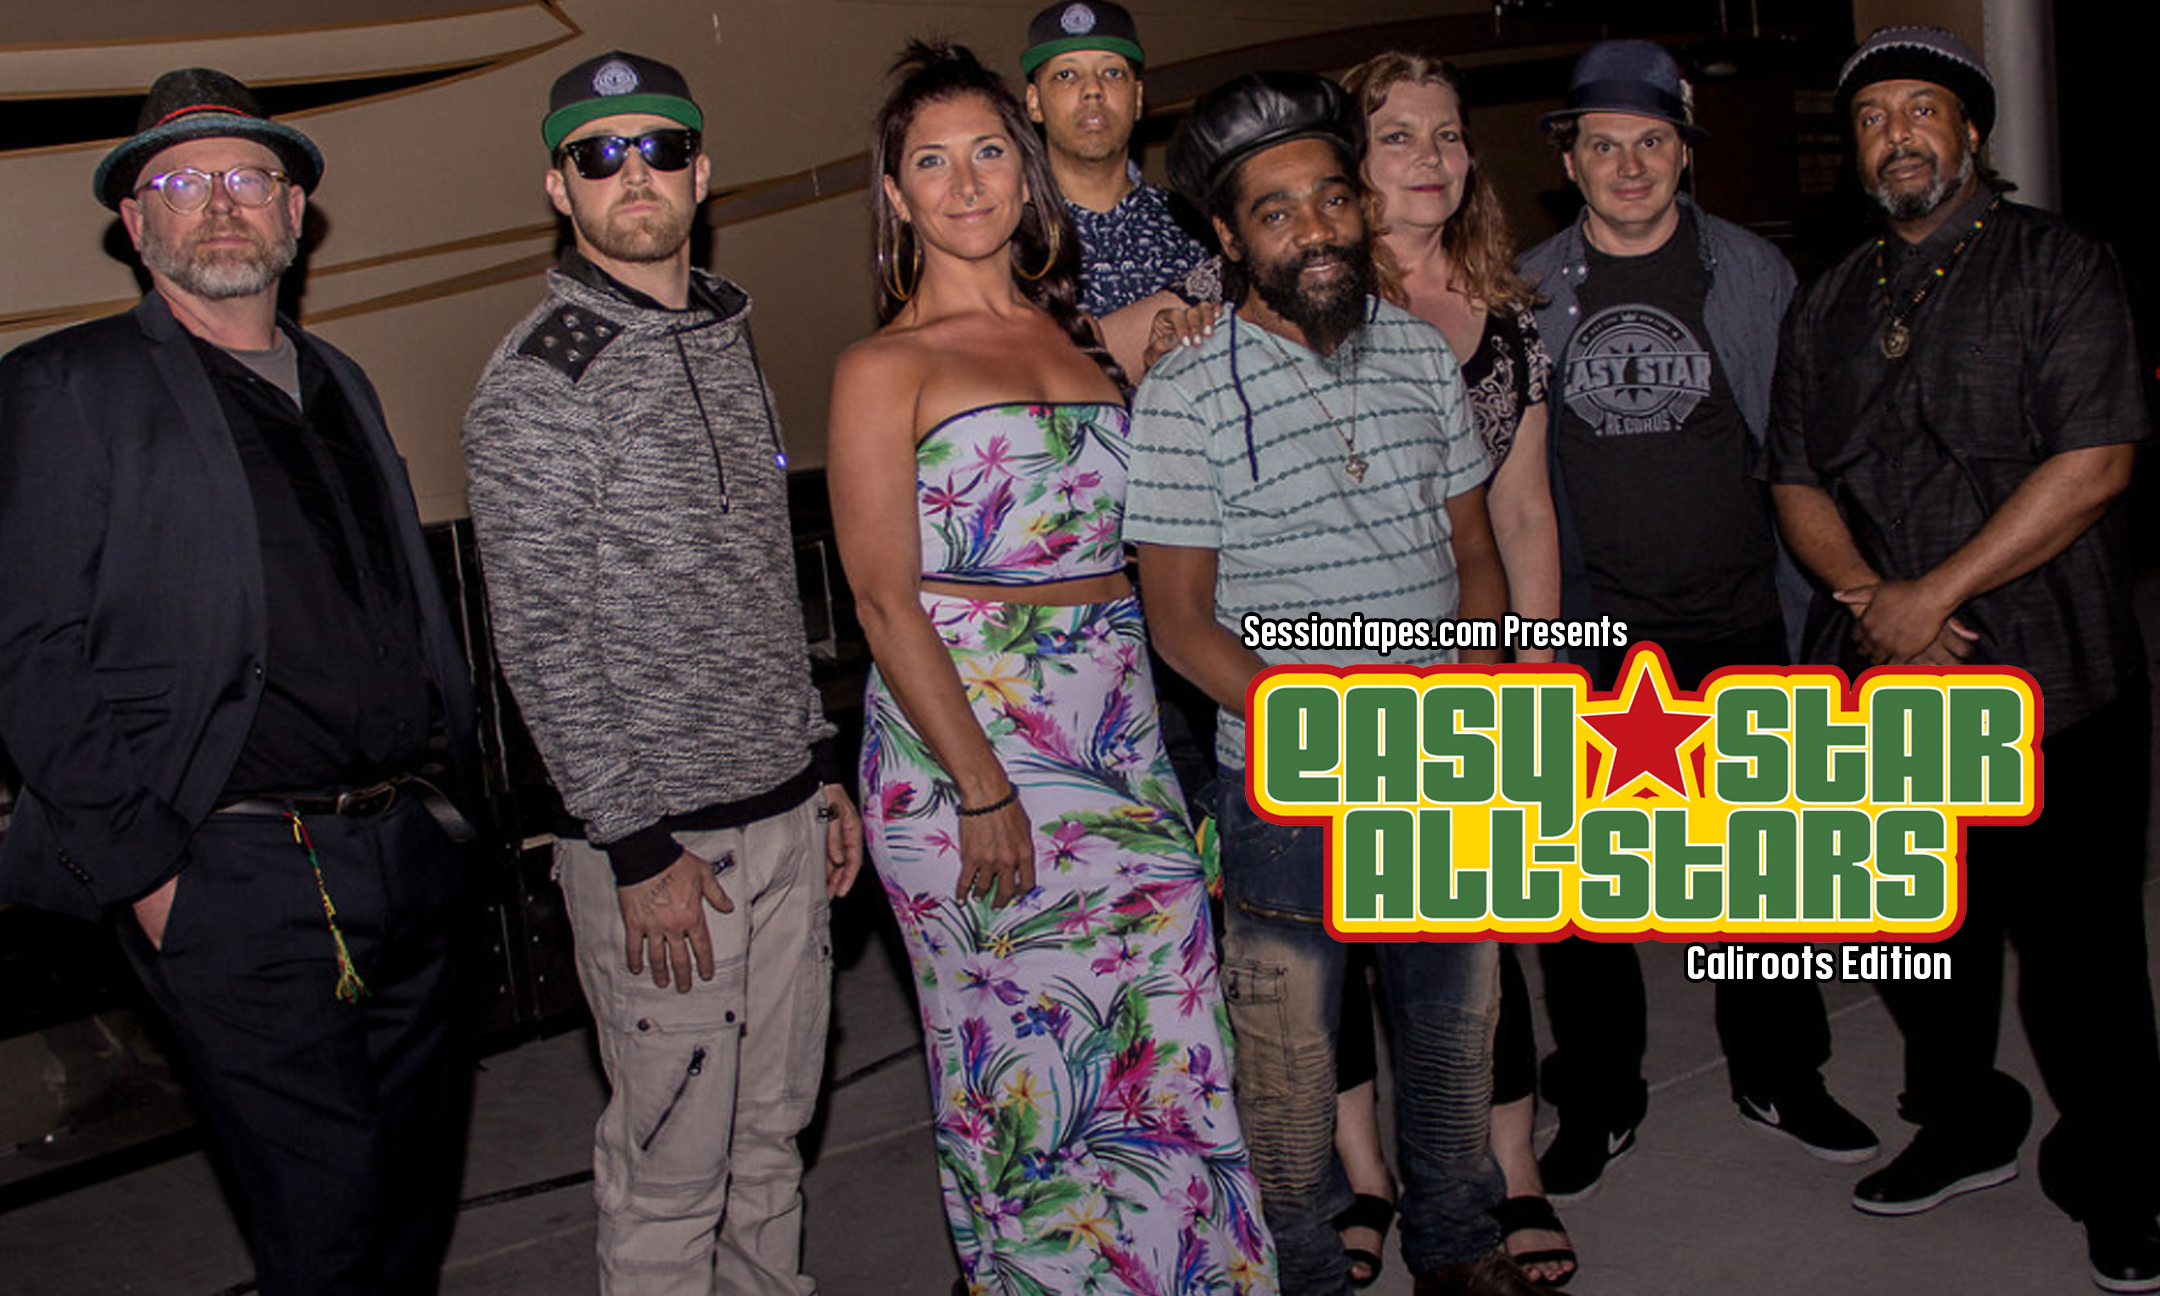 Sessiontapes.com Presents Easy Star All-Stars #Caliroots Edition